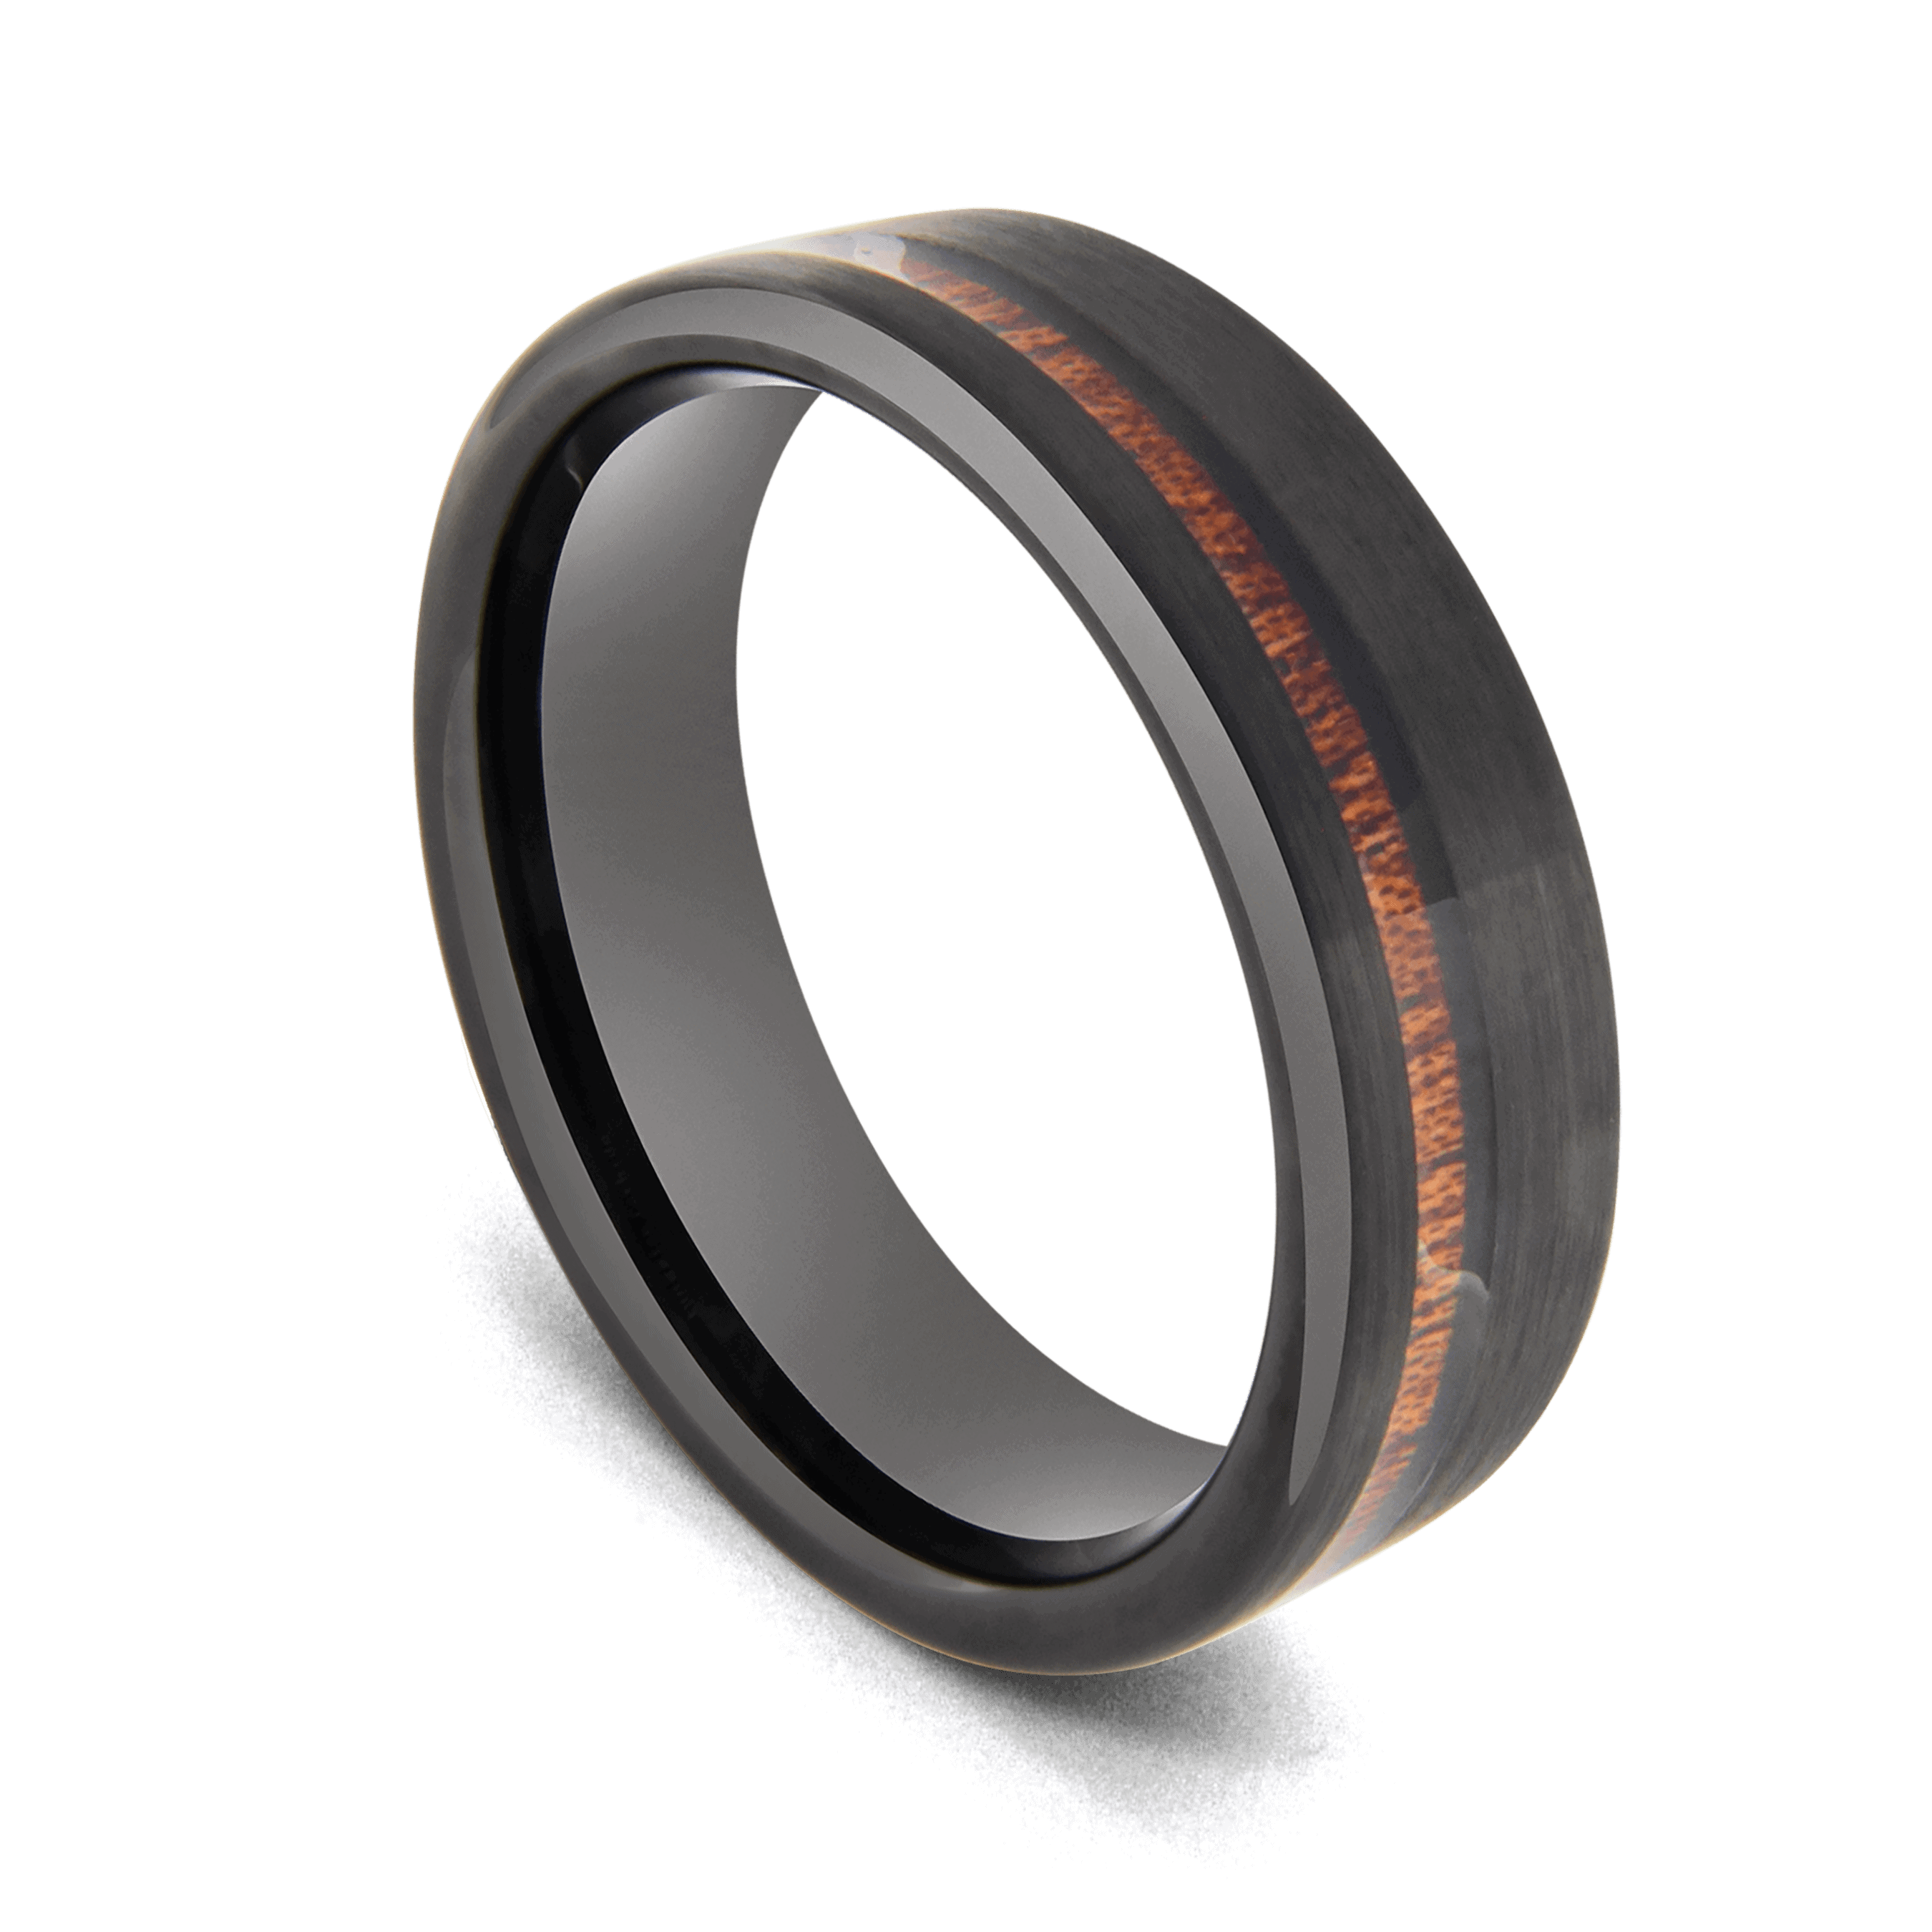 Men's Tungsten Ring - Black with Groove of Natural Wood